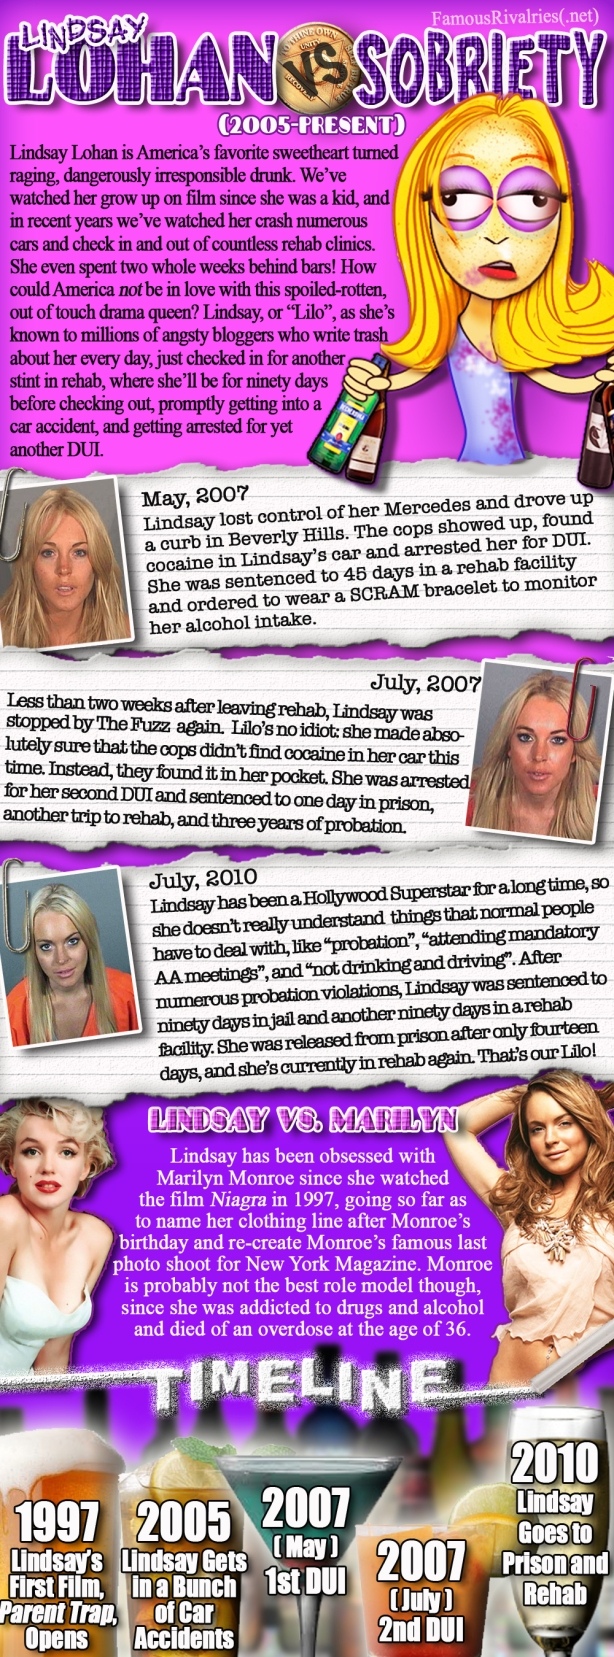 Famous Rivalries Lindsay Lohan vs Sobriety